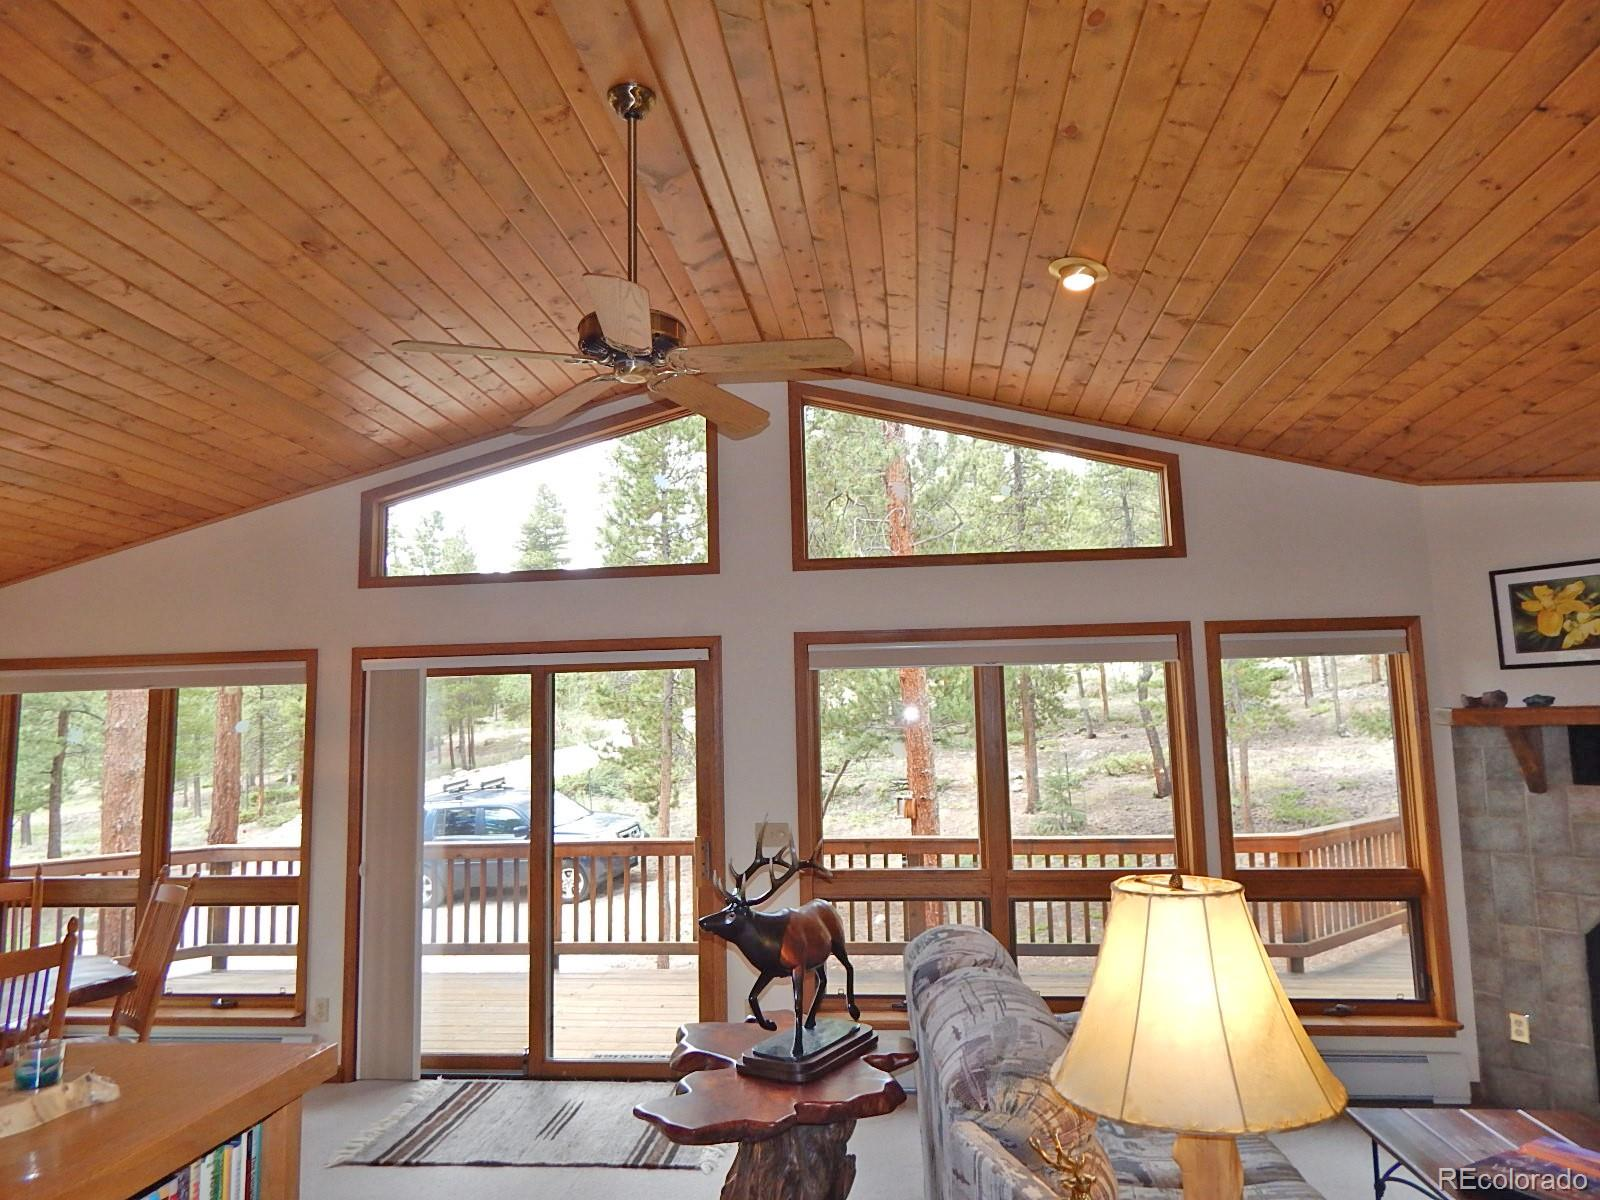 MLS# 7606361 - 3 - 30378 National Forest Drive, Buena Vista, CO 81211